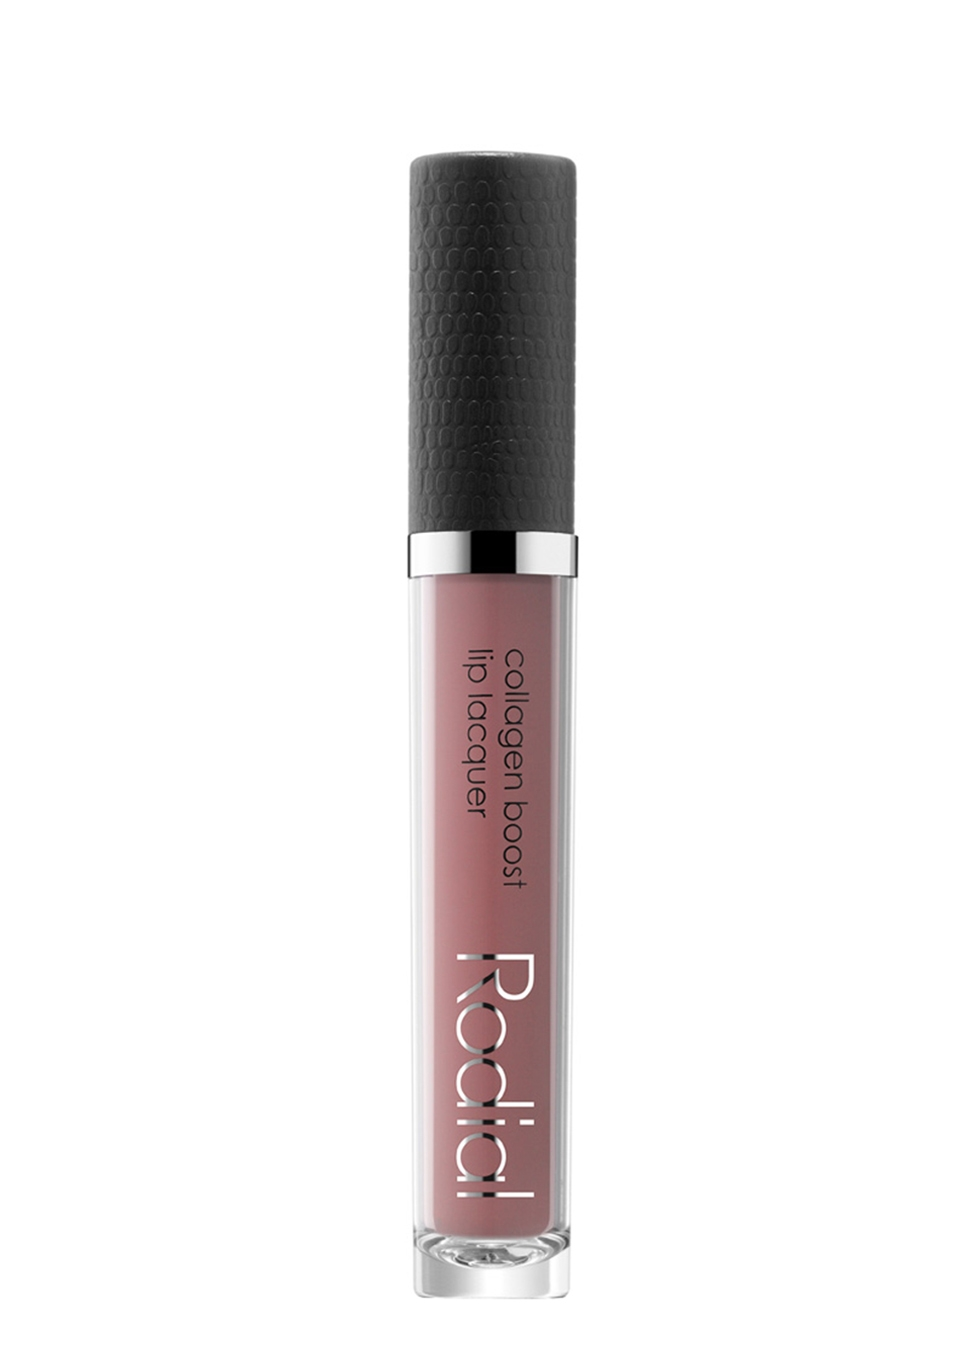 Collagen Boost Lip Lacquer - Rodial